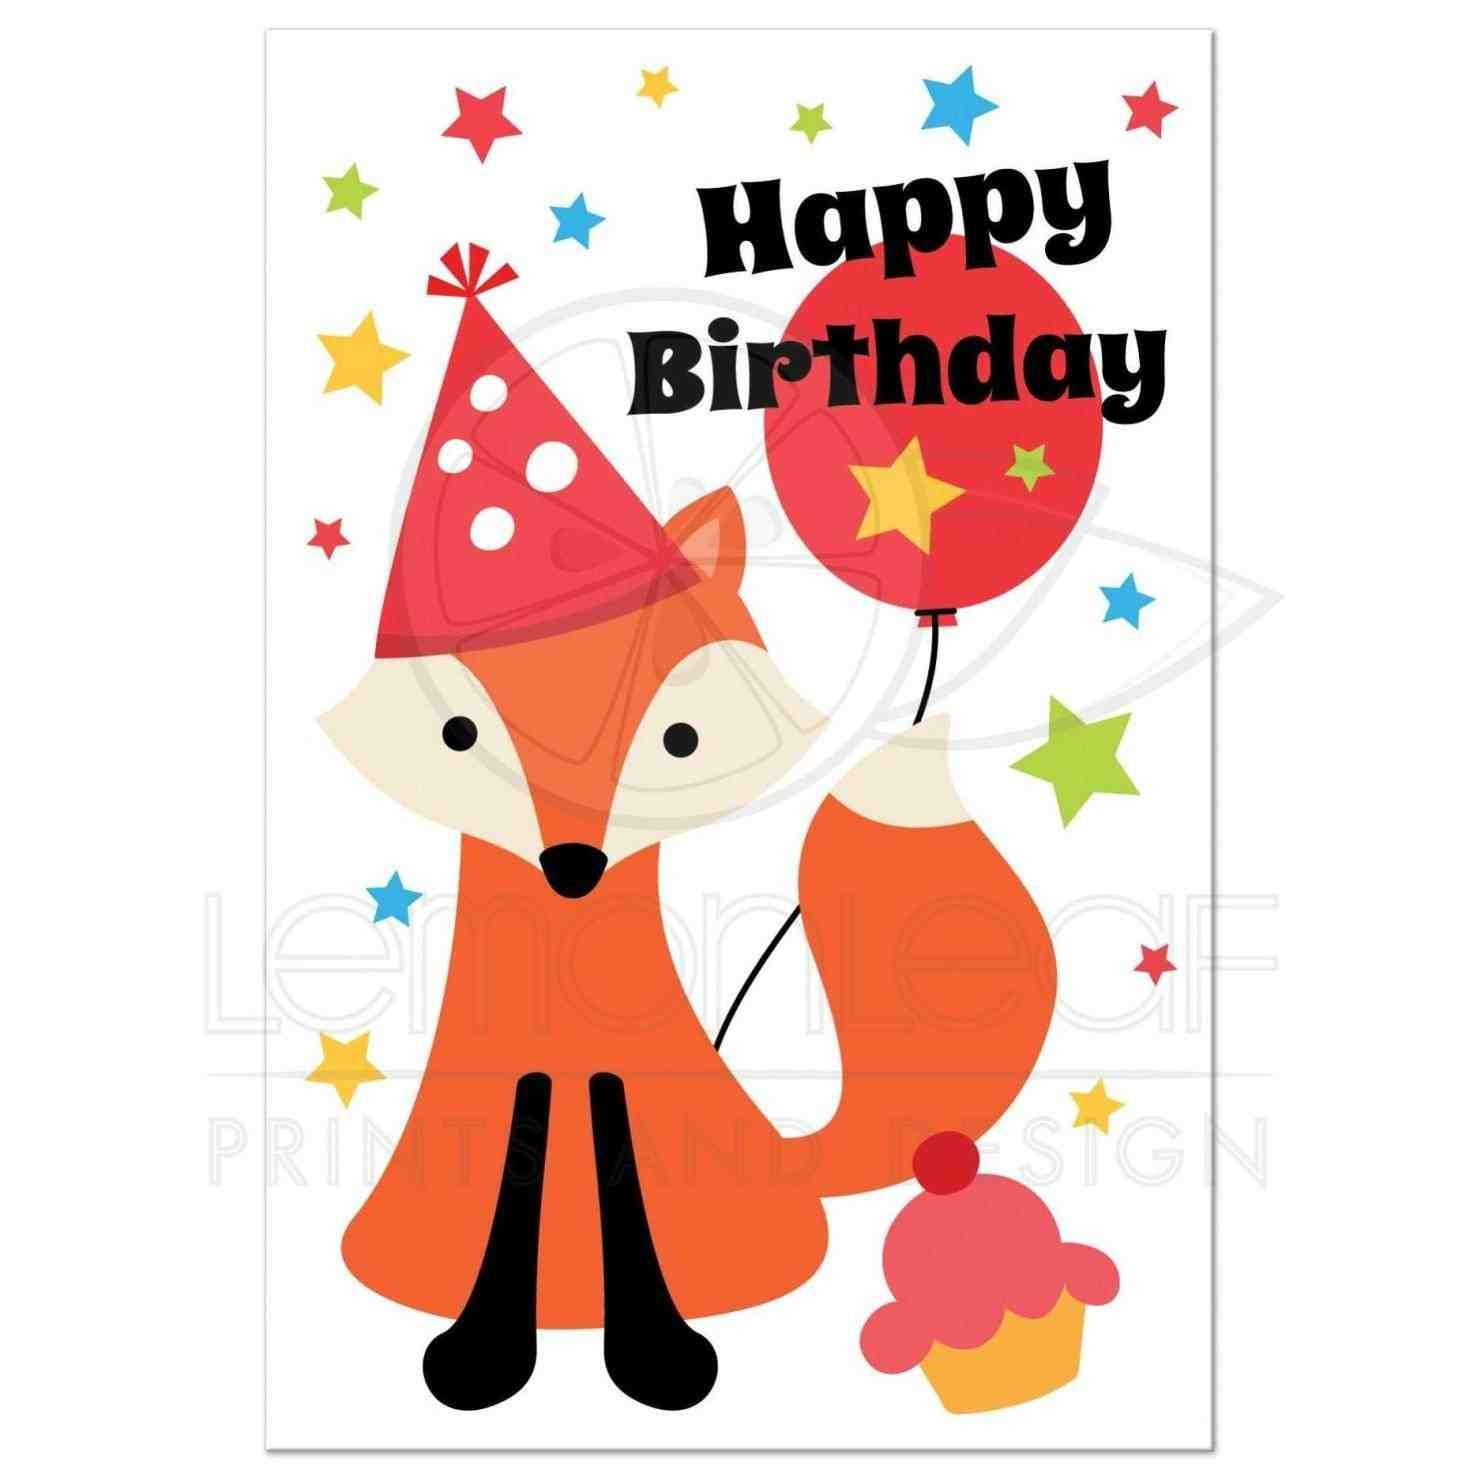 Happy birthday greeting cards with dots free wallpaper birthday happy birthday greeting cards with dots free wallpaper birthday card wallpapersafari happy birthday birthday quotes download free birthday greeting kristyandbryce Images